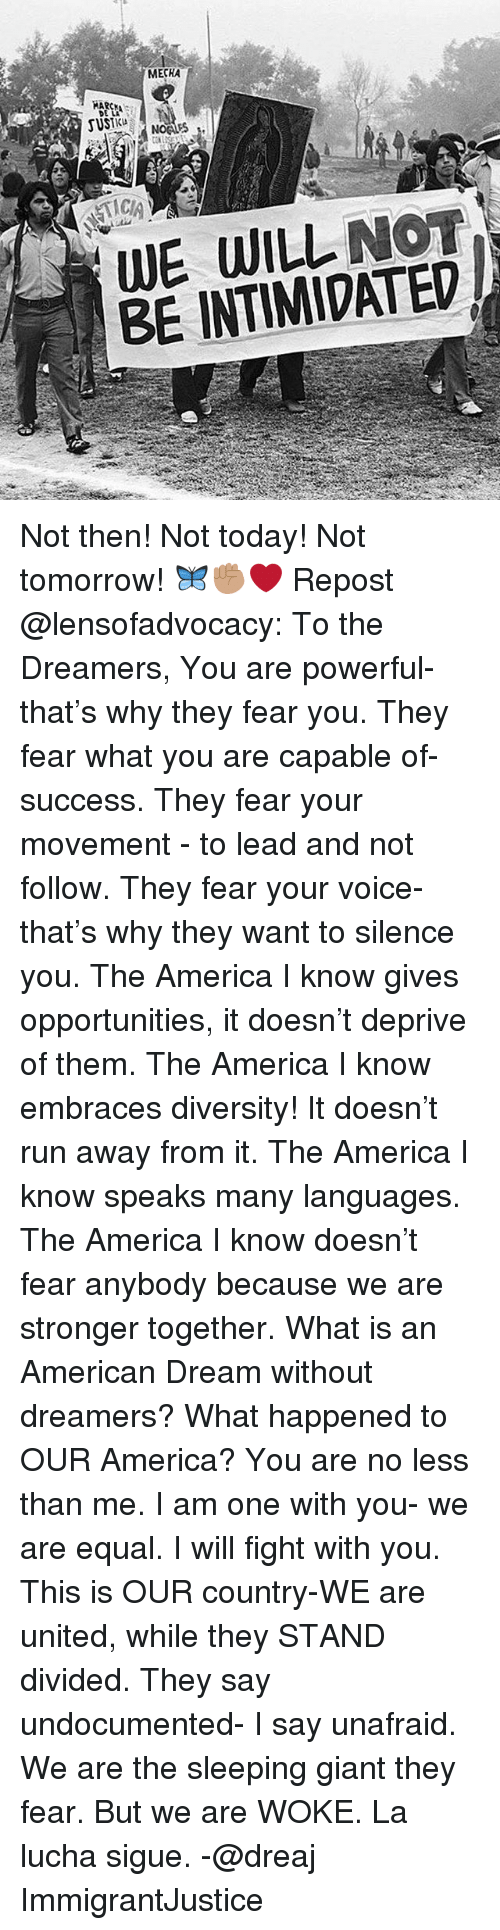 America, Memes, and Run: MECHA  WE WILL NOT  BE INTIMIDATED Not then! Not today! Not tomorrow! 🦋✊🏽❤ Repost @lensofadvocacy: To the Dreamers, You are powerful- that's why they fear you. They fear what you are capable of- success. They fear your movement - to lead and not follow. They fear your voice- that's why they want to silence you. The America I know gives opportunities, it doesn't deprive of them. The America I know embraces diversity! It doesn't run away from it. The America I know speaks many languages. The America I know doesn't fear anybody because we are stronger together. What is an American Dream without dreamers? What happened to OUR America? You are no less than me. I am one with you- we are equal. I will fight with you. This is OUR country-WE are united, while they STAND divided. They say undocumented- I say unafraid. We are the sleeping giant they fear. But we are WOKE. La lucha sigue. -@dreaj ImmigrantJustice